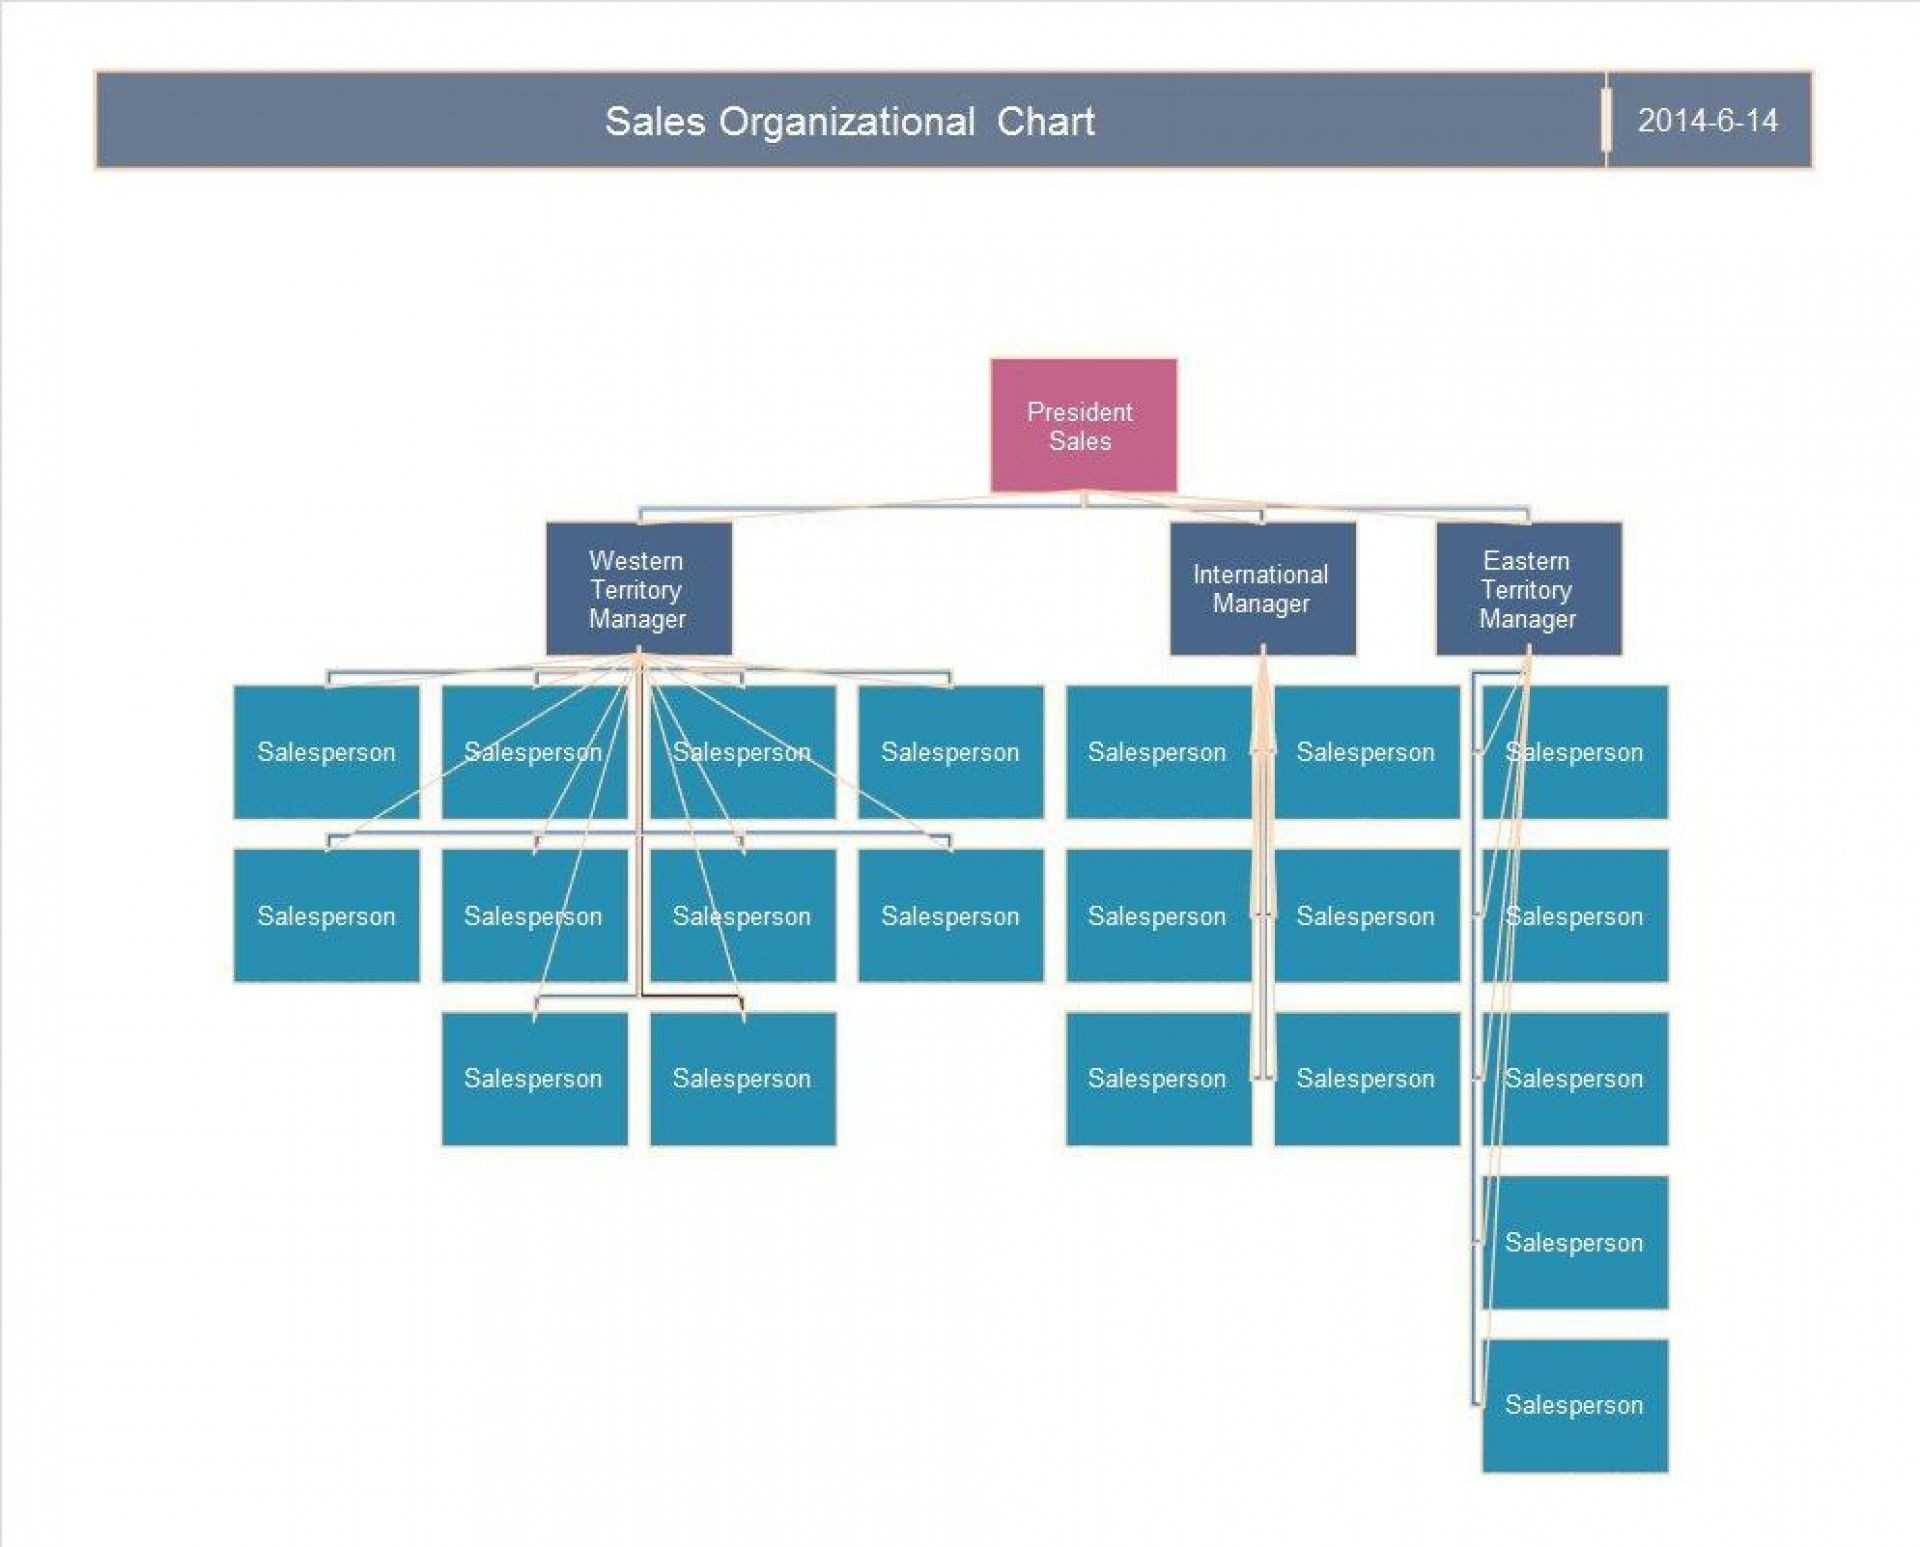 007 Remarkable Microsoft Organizational Chart Template Word Concept  Free 2013 Hierarchy1920